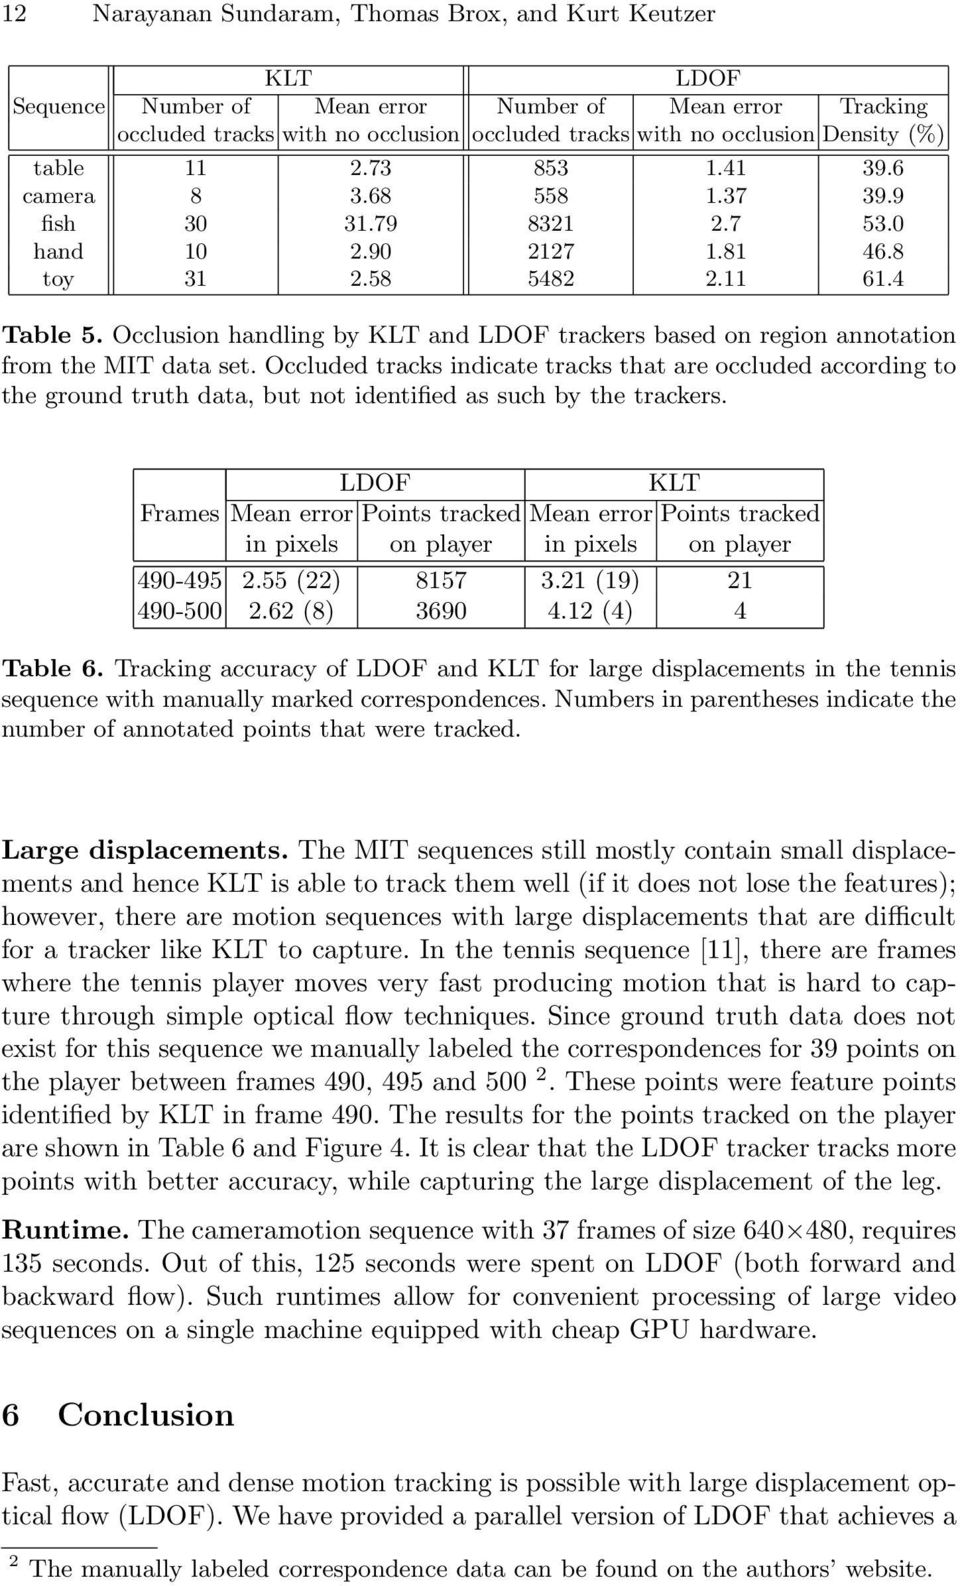 Occlusion handling by KLT and LDOF trackers based on region annotation from the MIT data set.